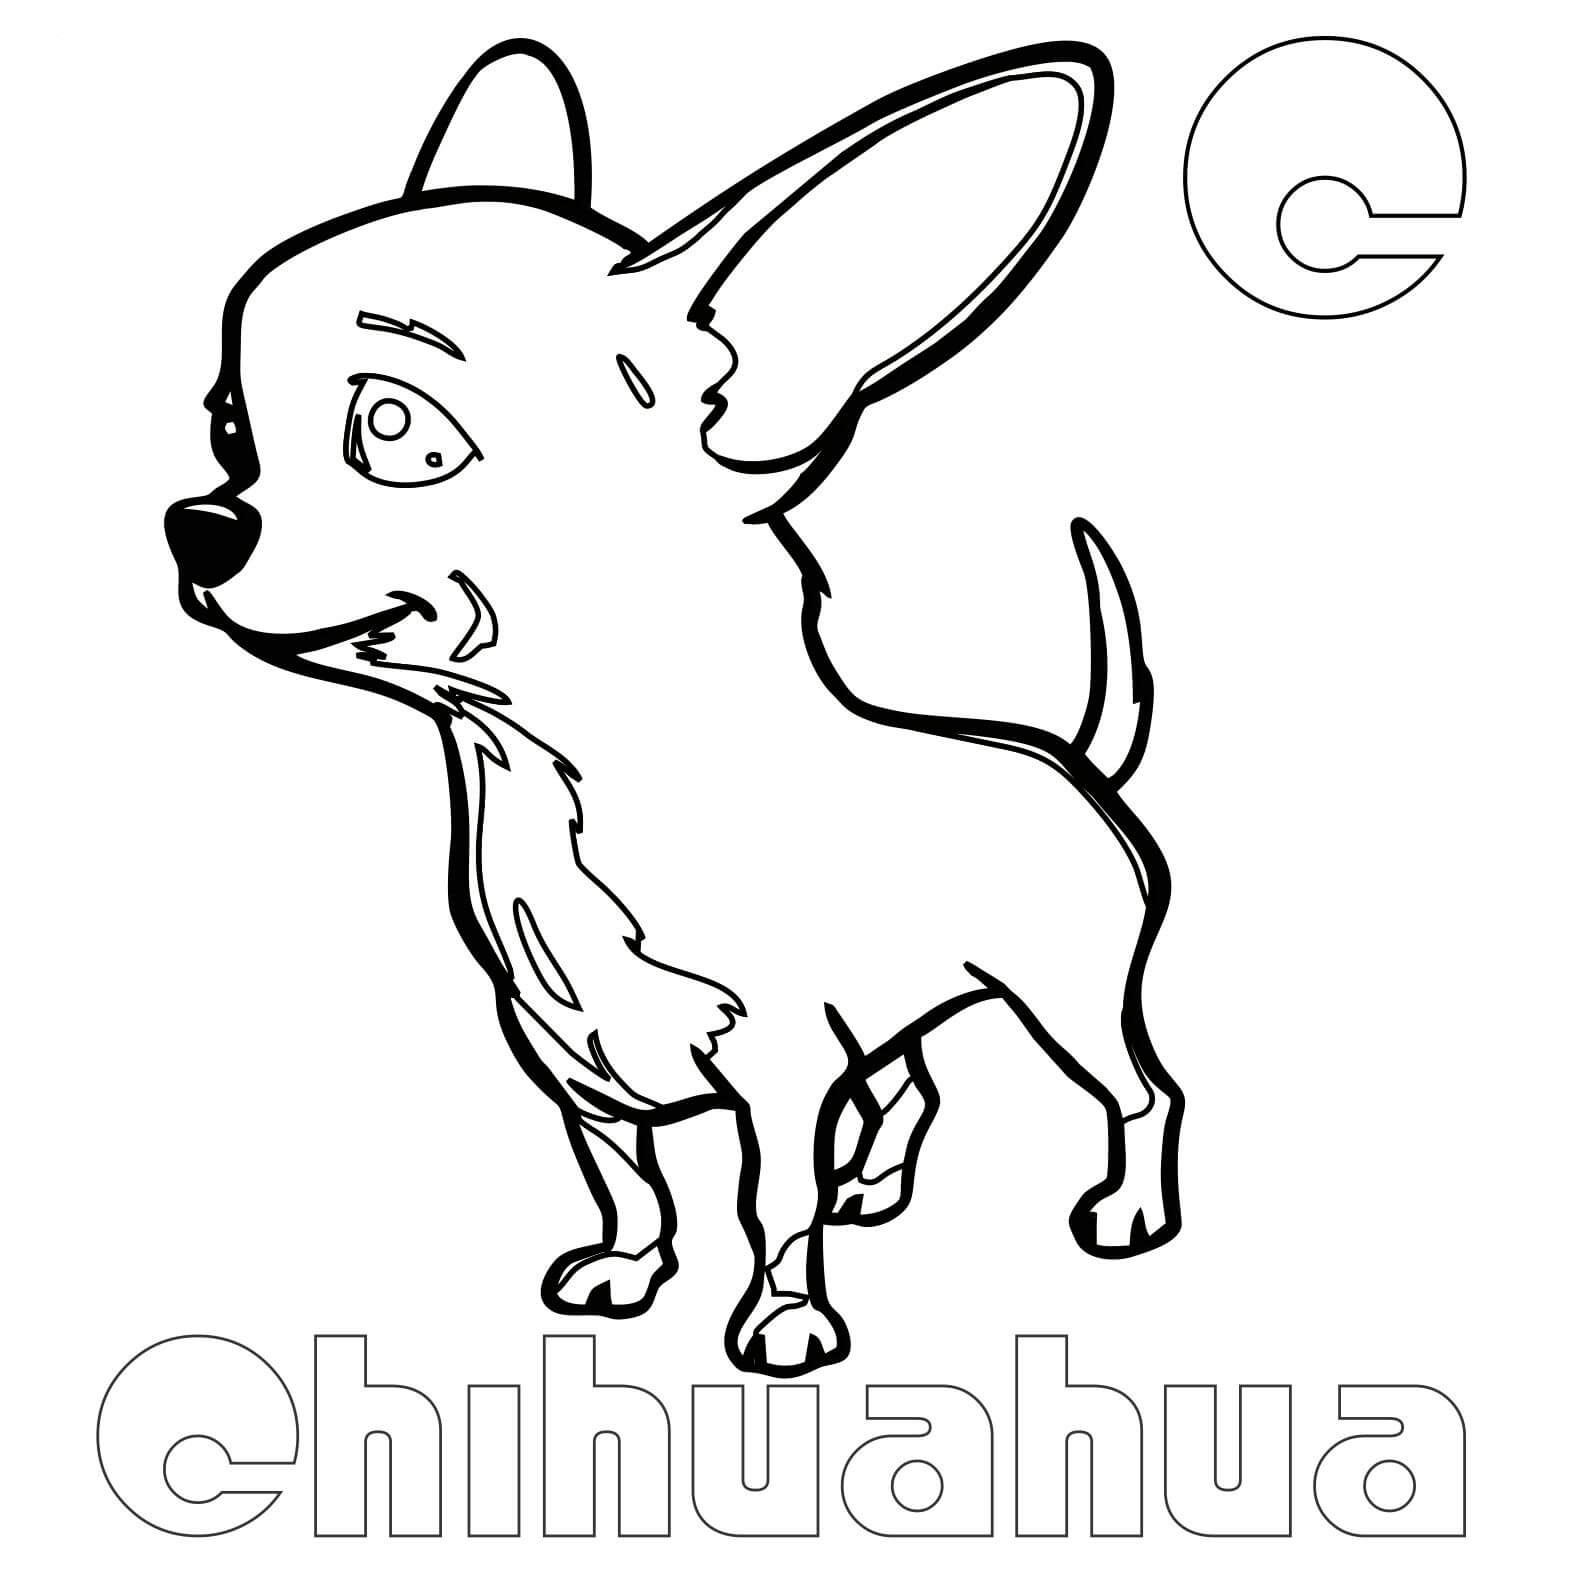 Chihuahua Coloring Pages Best Coloring Pages For Kids